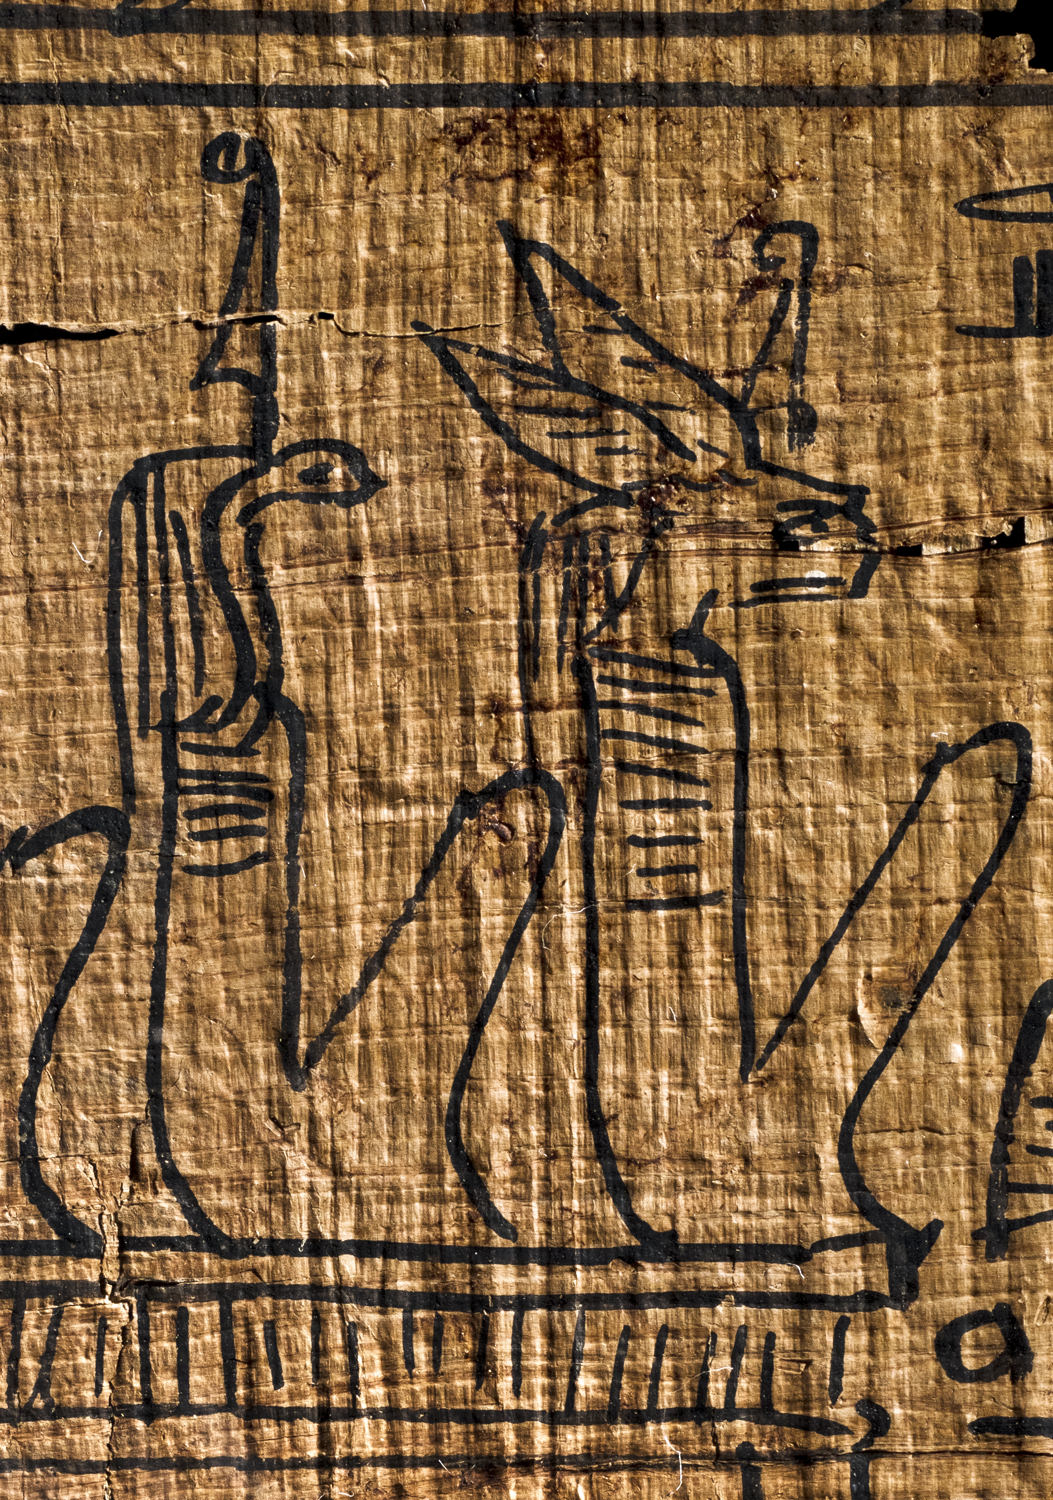 two animal-headed deities in the egyptian book of the dead